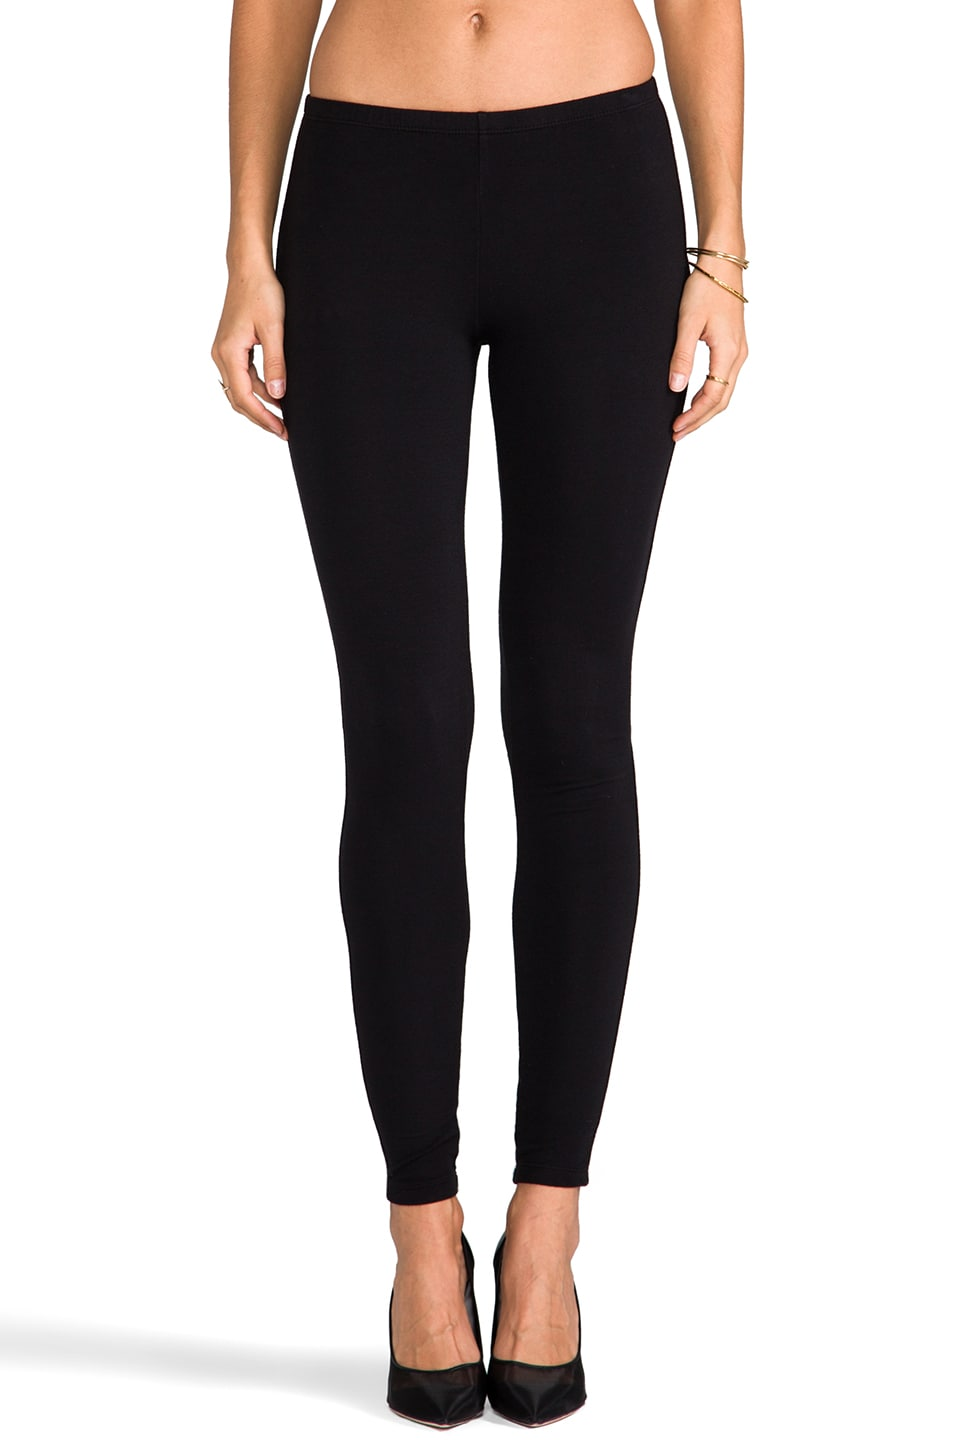 Splendid French Terry Leggings in Black